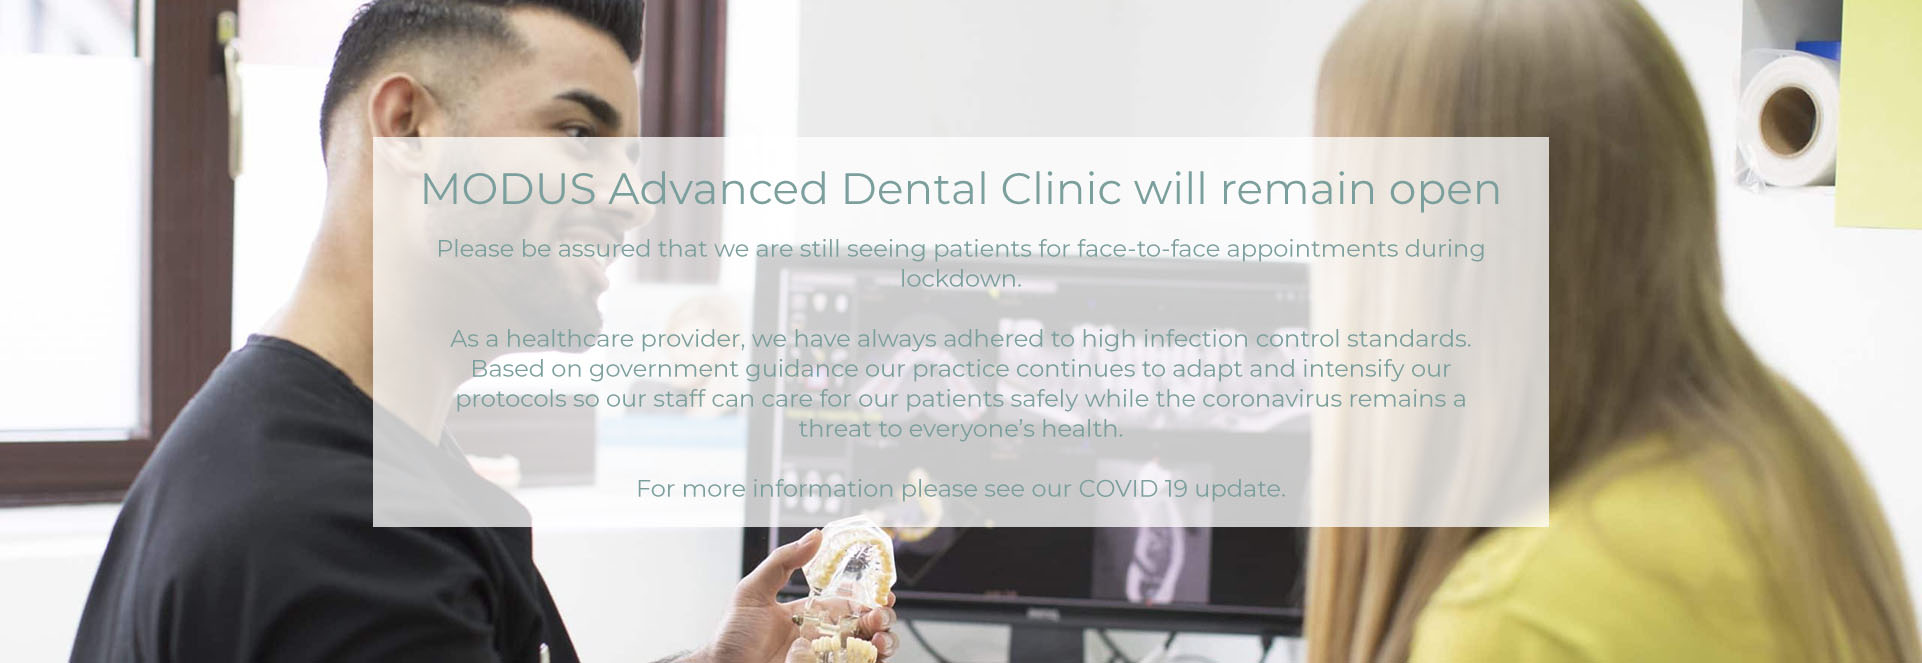 MODUS Advanced Dental Clinic will remain open